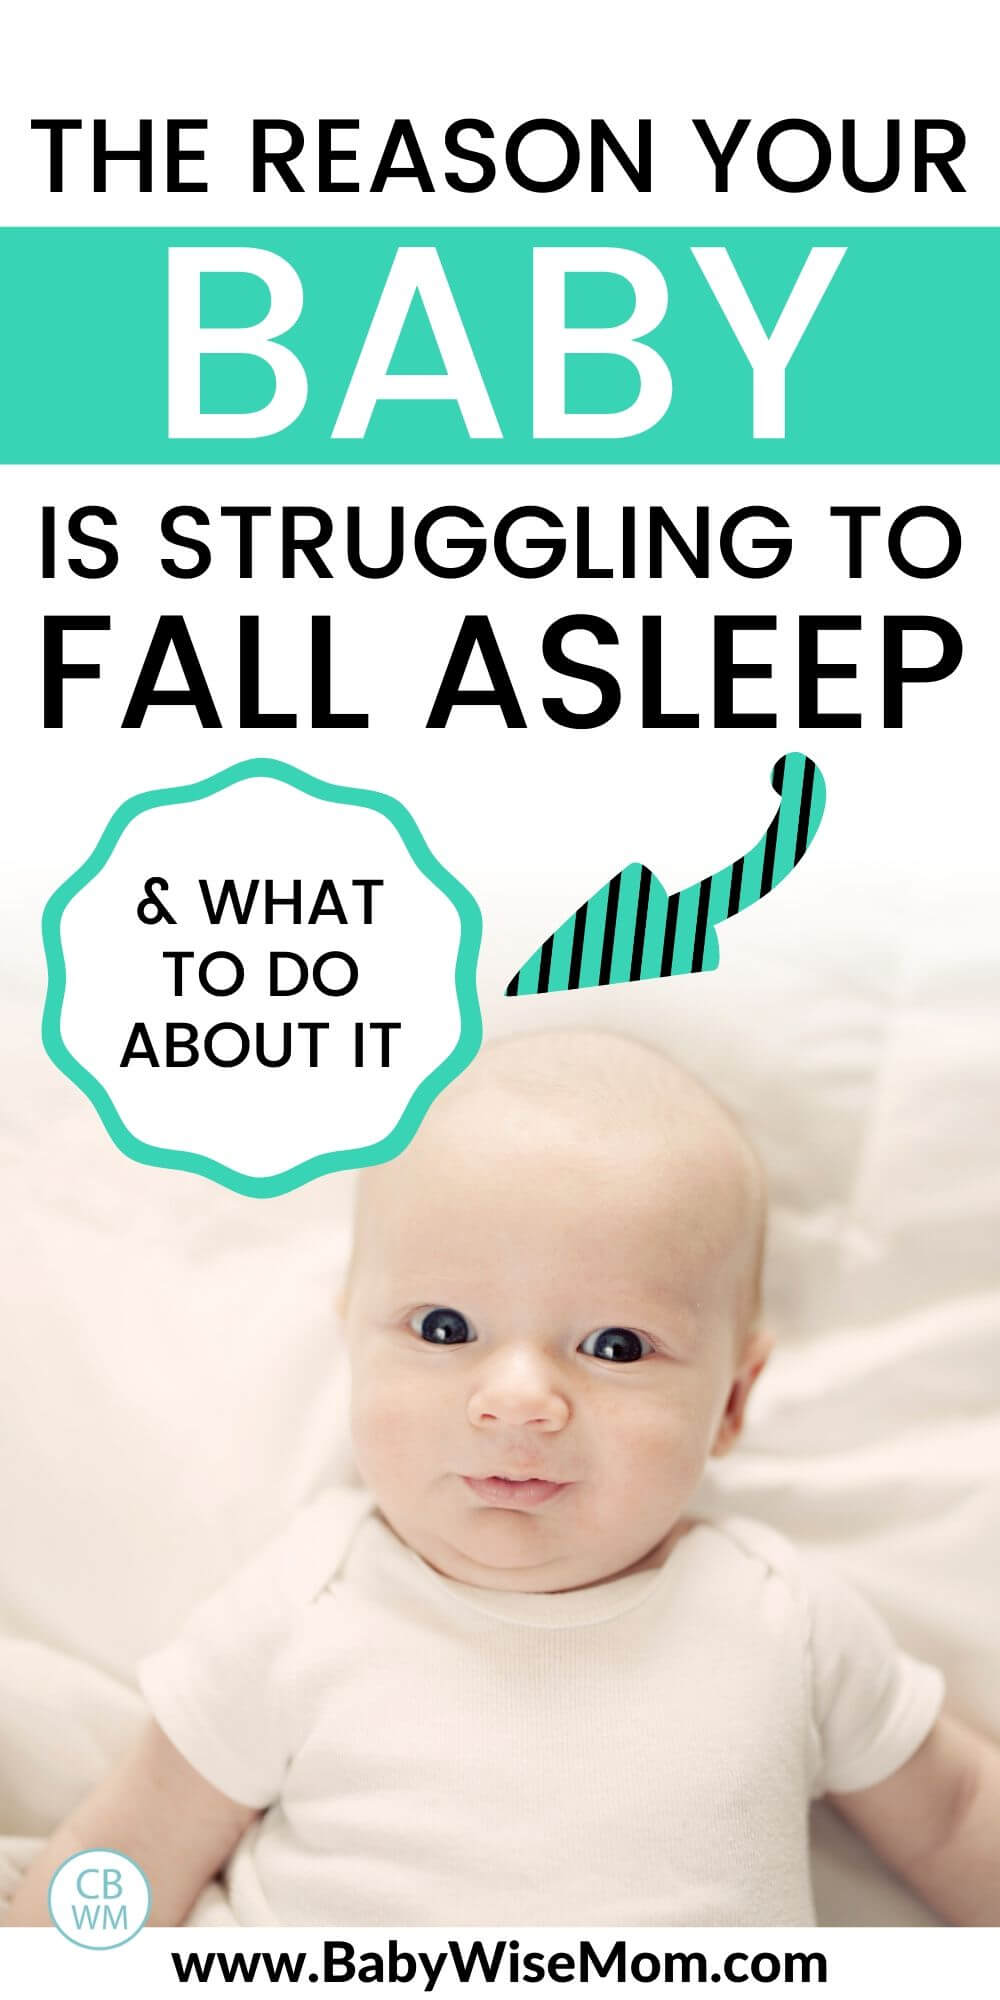 The reason your baby is struggling to fall asleep and what to do about it